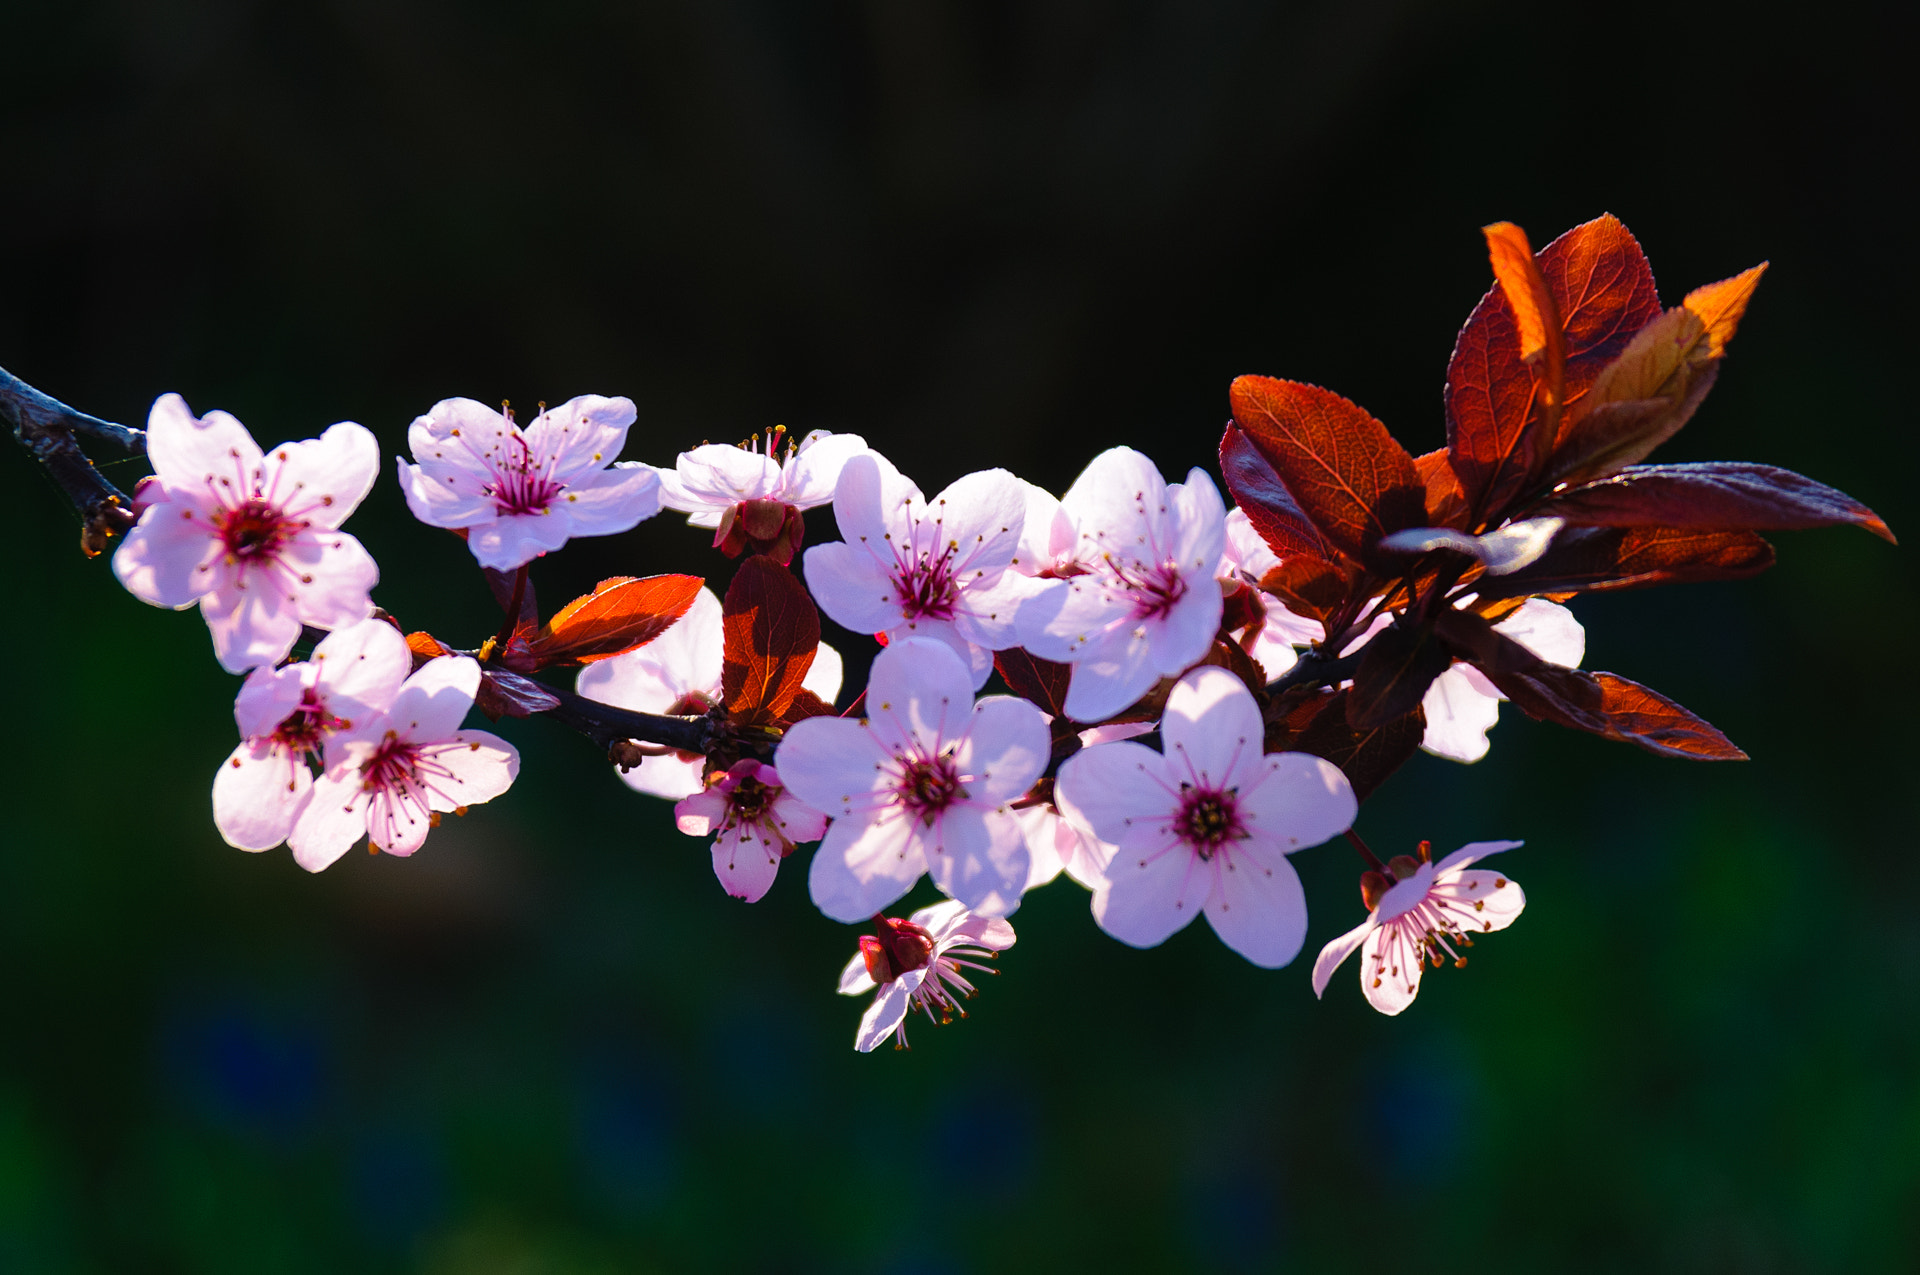 Photograph Spring by Ernst Gamauf on 500px